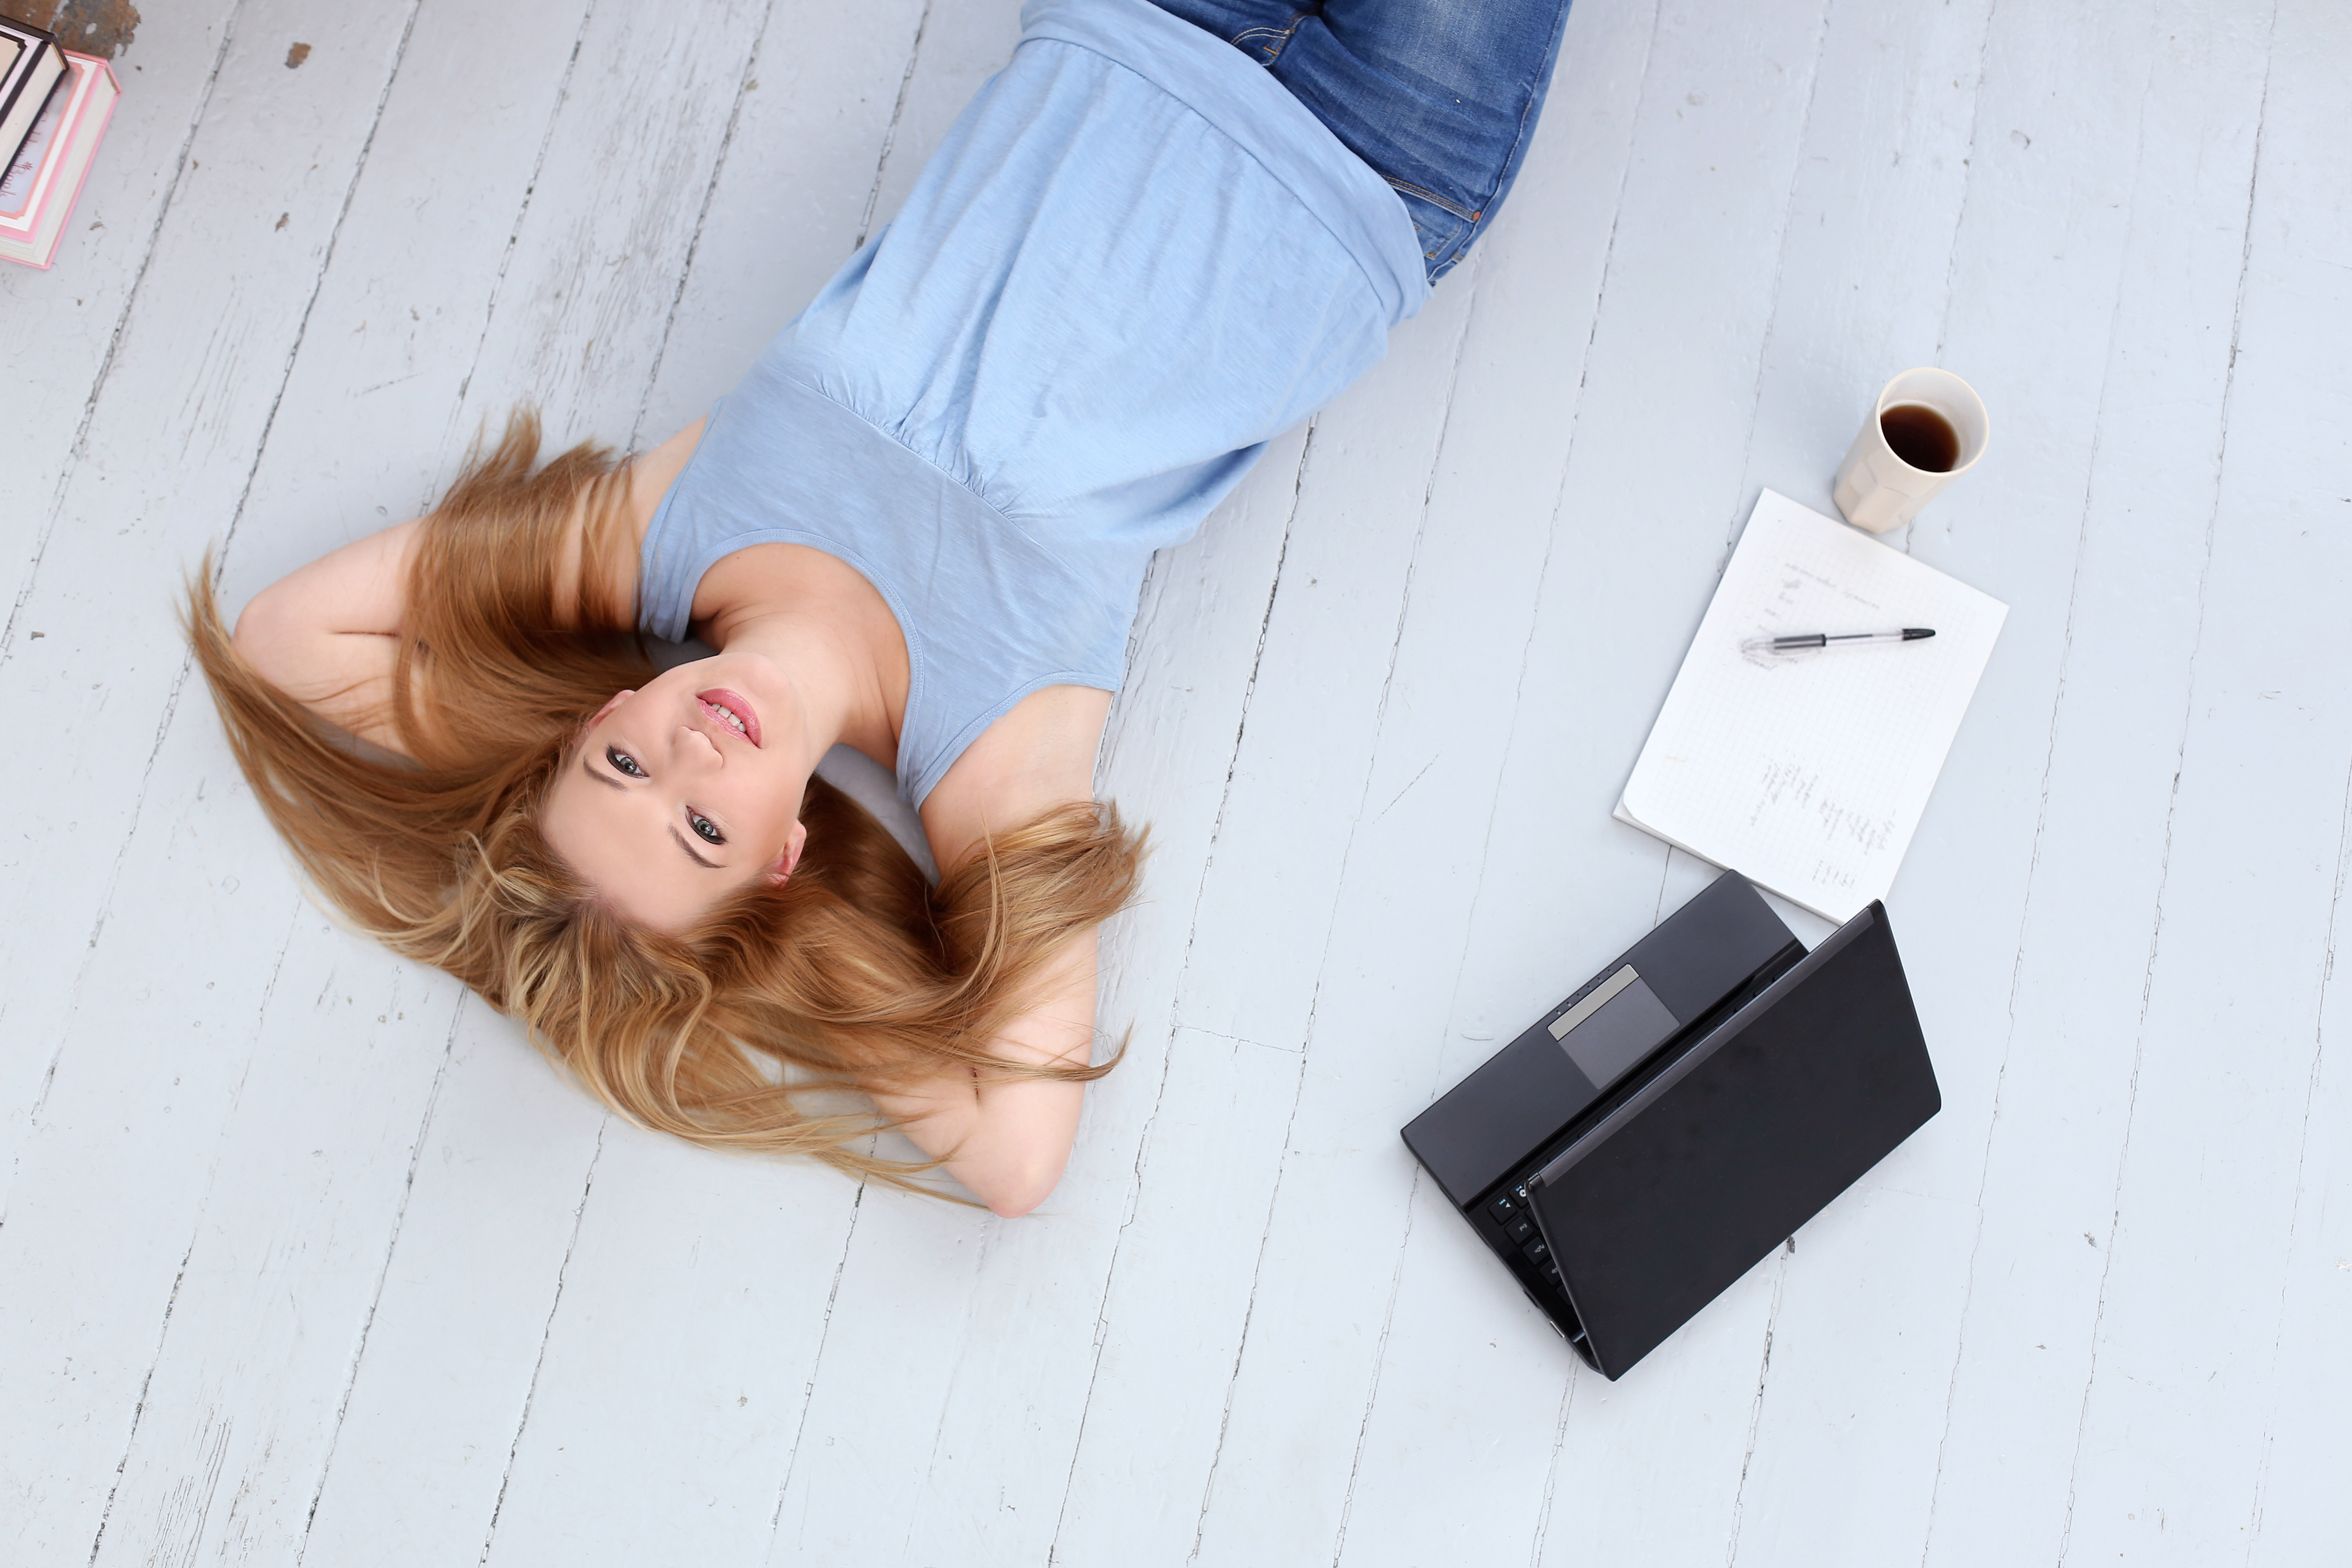 Woman on floor with laptop